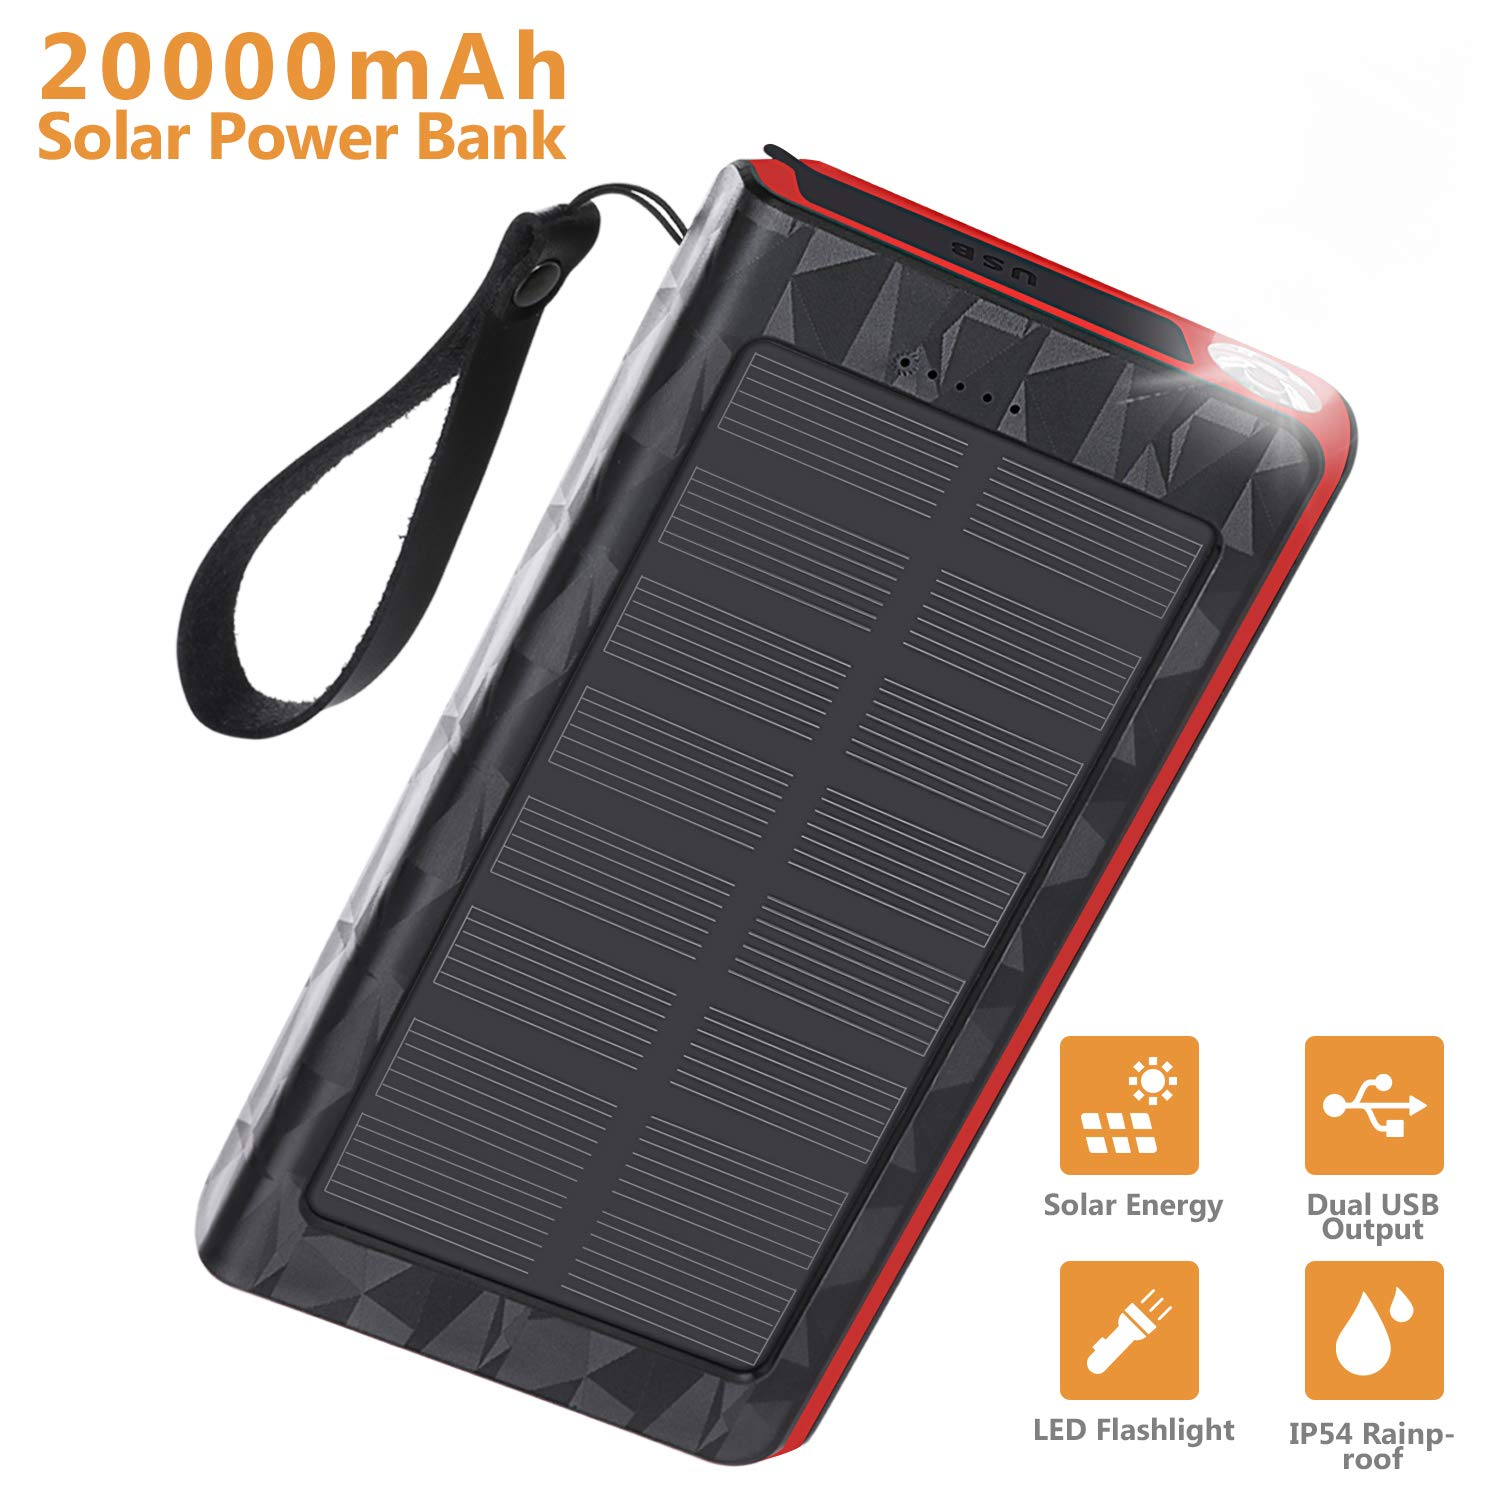 AMAES Solar Charger 20000mAh, Portable Phone Charger External Battery Pack, Compatible with iPhone Samsung Tablets & More, Type-C and Micro USB Inputs, 3 Outputs, Flashlight, Carabiner, IP54 Rainproof by AMAES